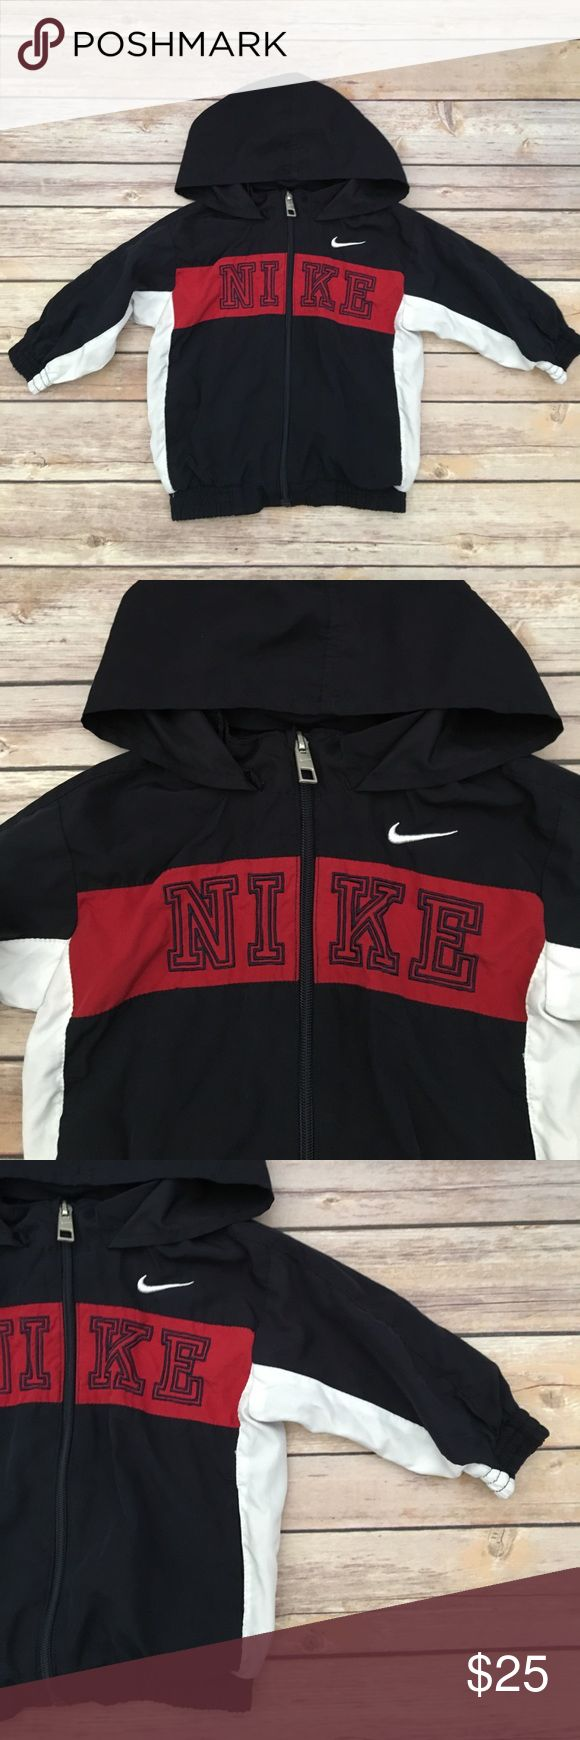 Nike Zip Up Jacket w/ Hood! Blue/Red/White Nike long sleeve zip up jacket with hood! Great condition! Nike Jackets & Coats Raincoats